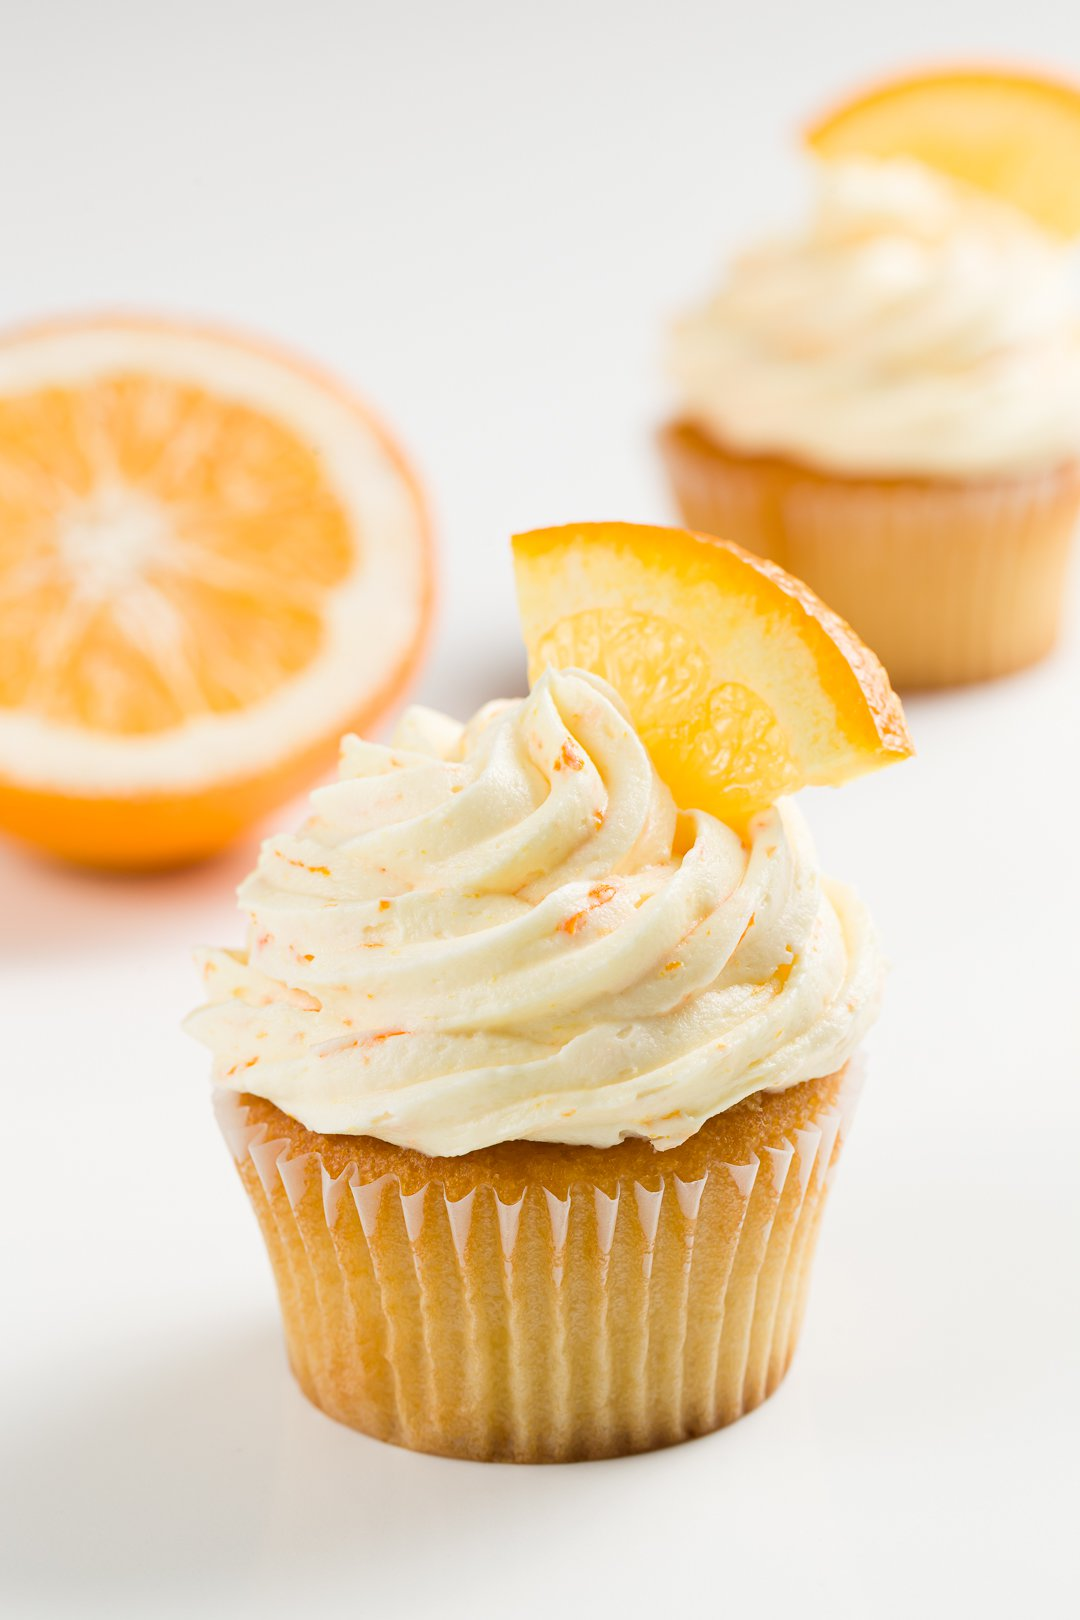 Orange frosting on vanilla cupcakes